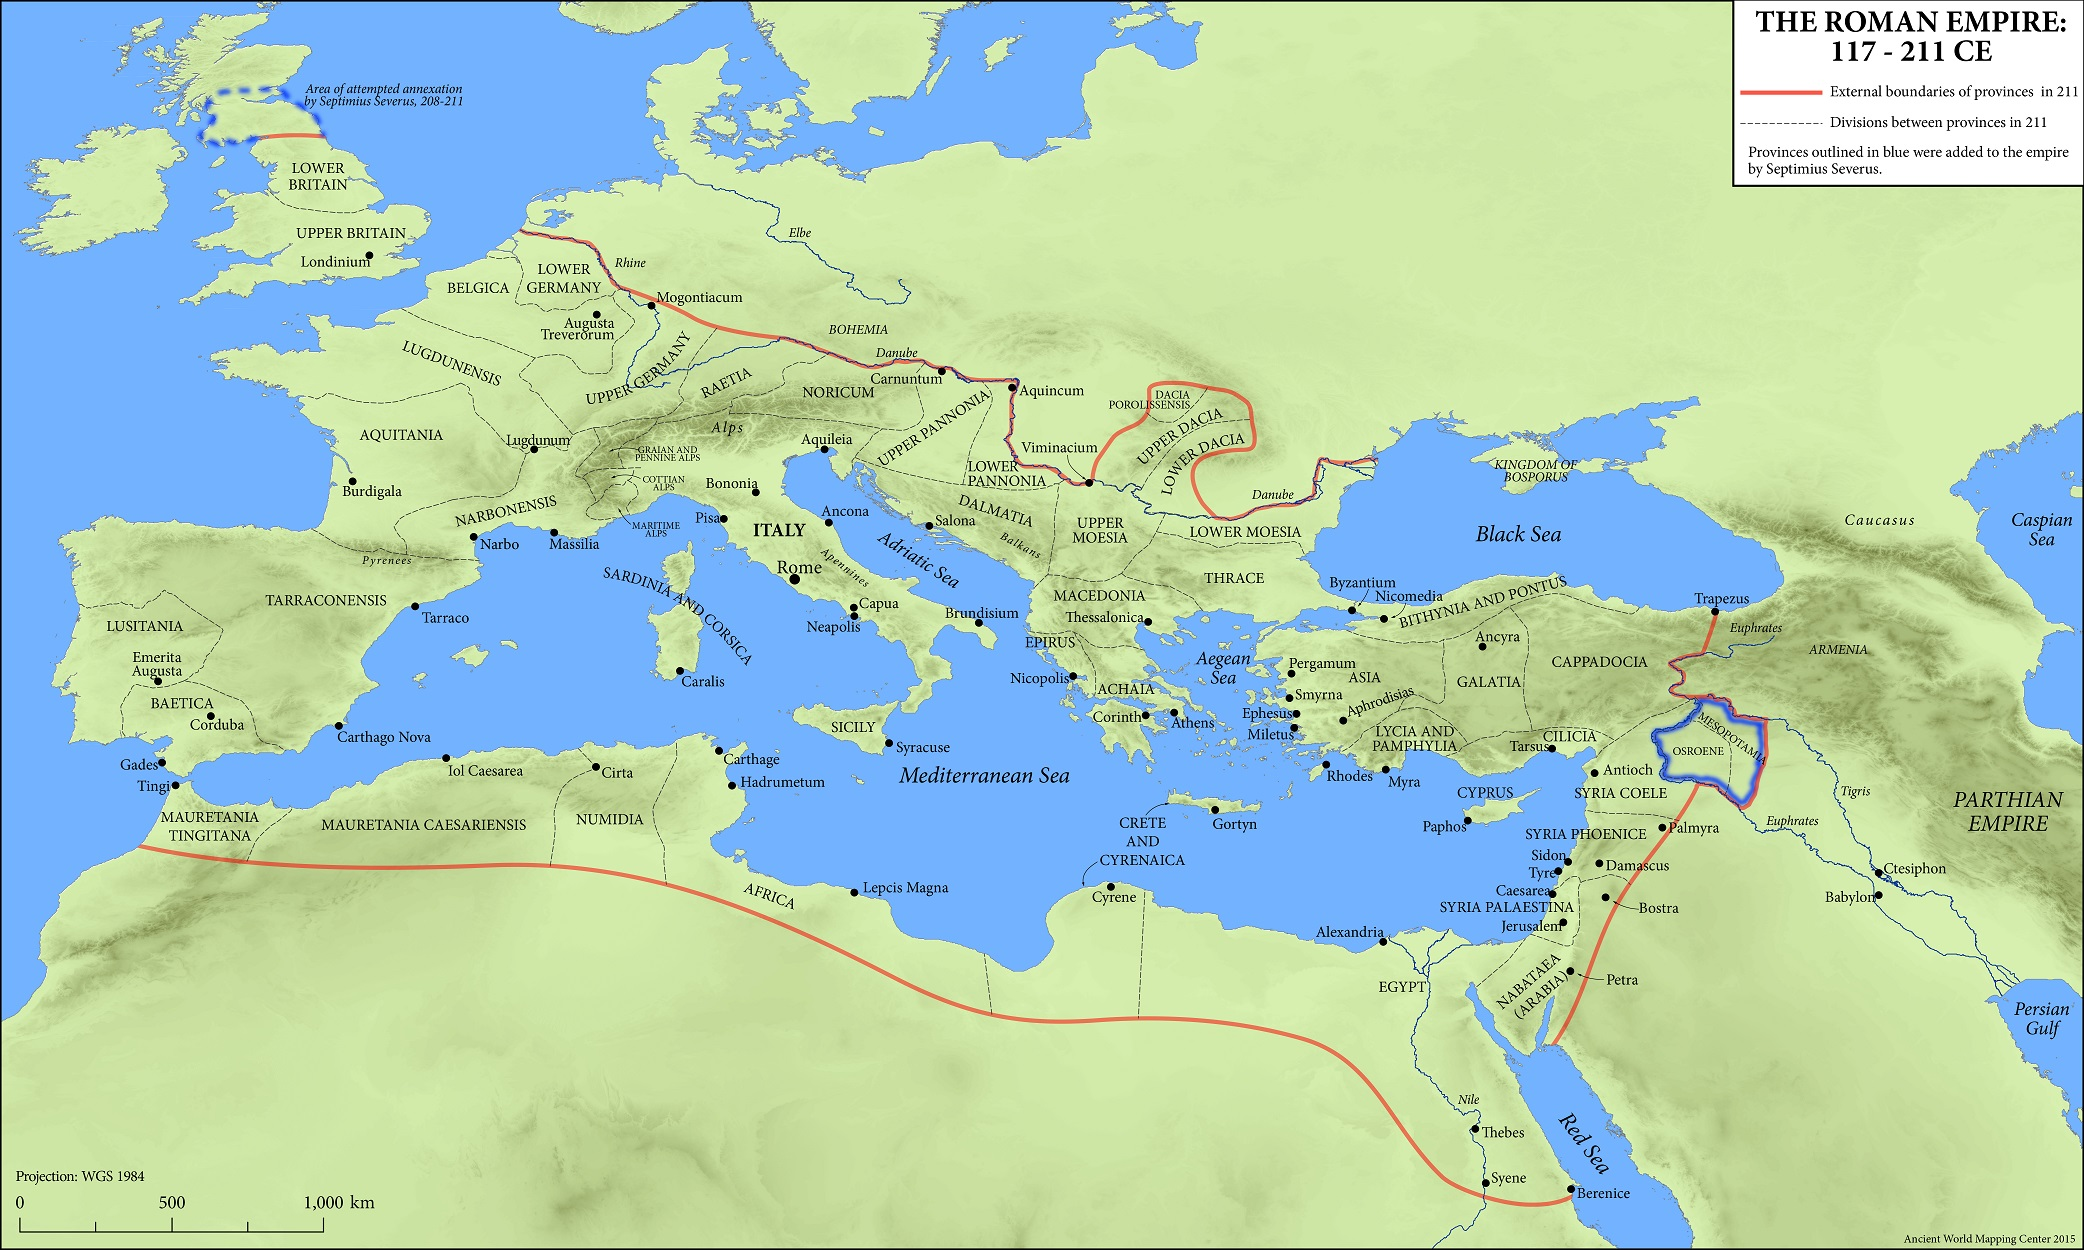 The Roman Empire Map Map: The Roman Empire, 117 211 CE   Oxford Classical Dictionary